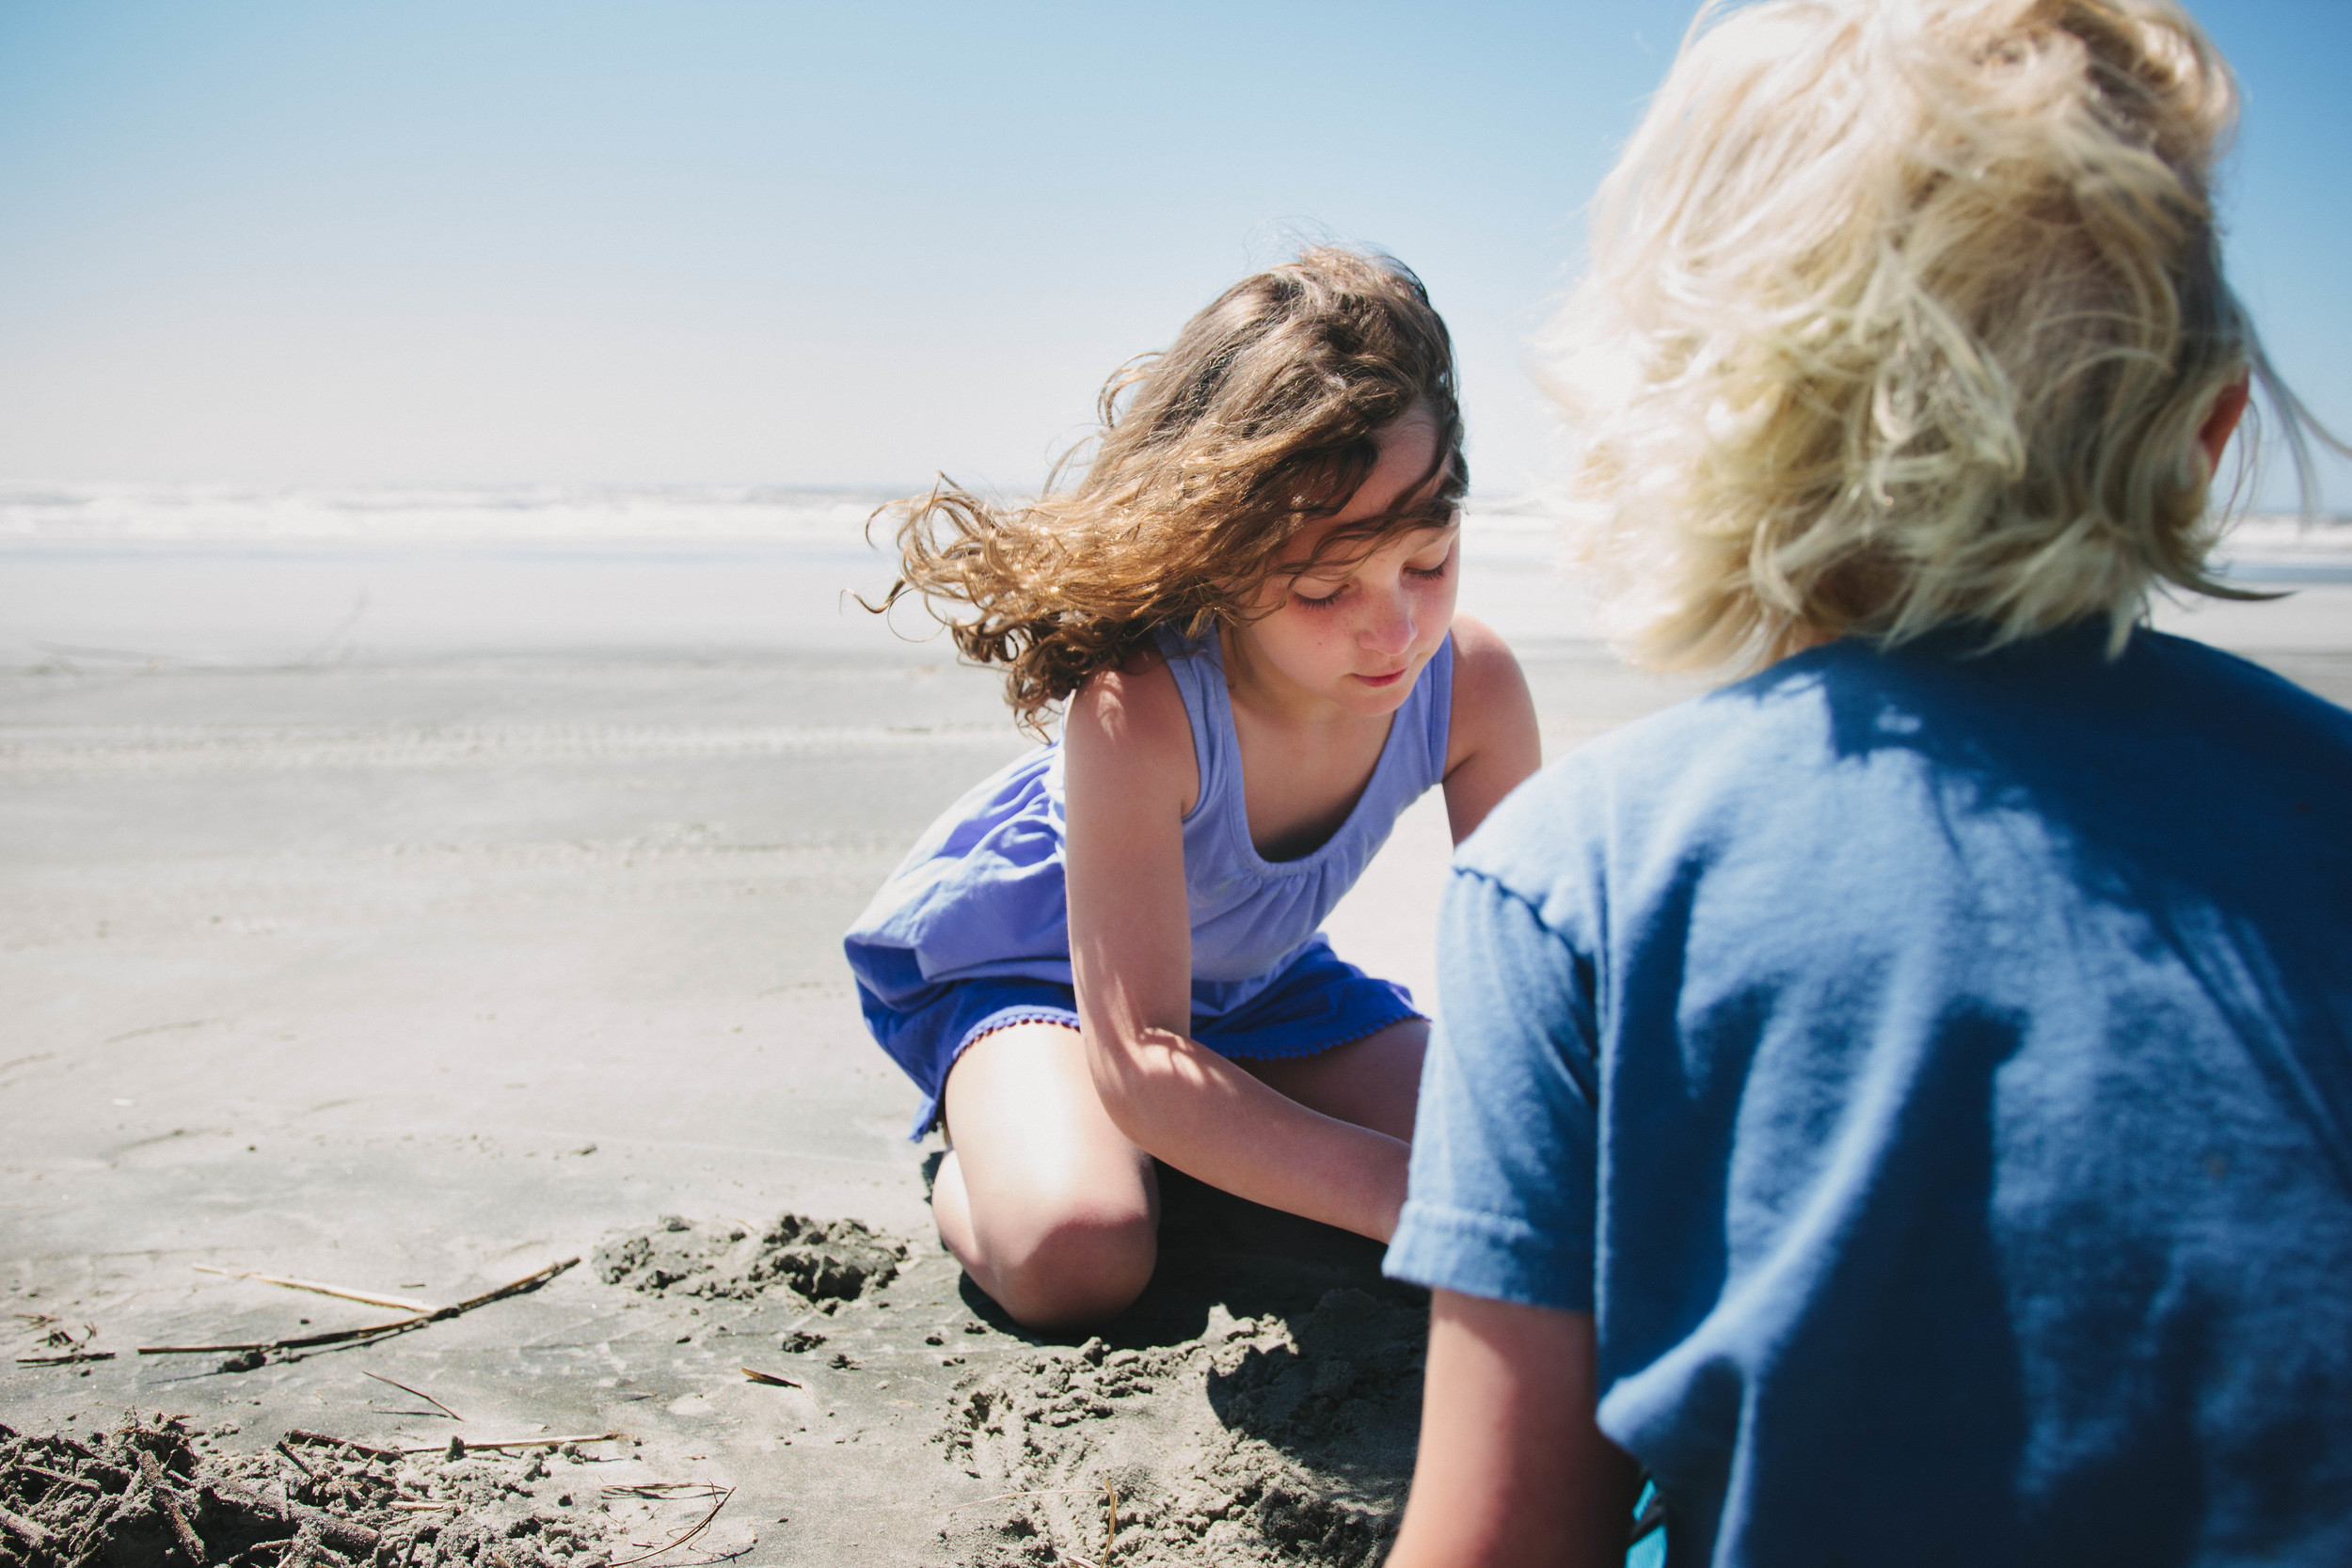 Image of girl a boy playing in the sand